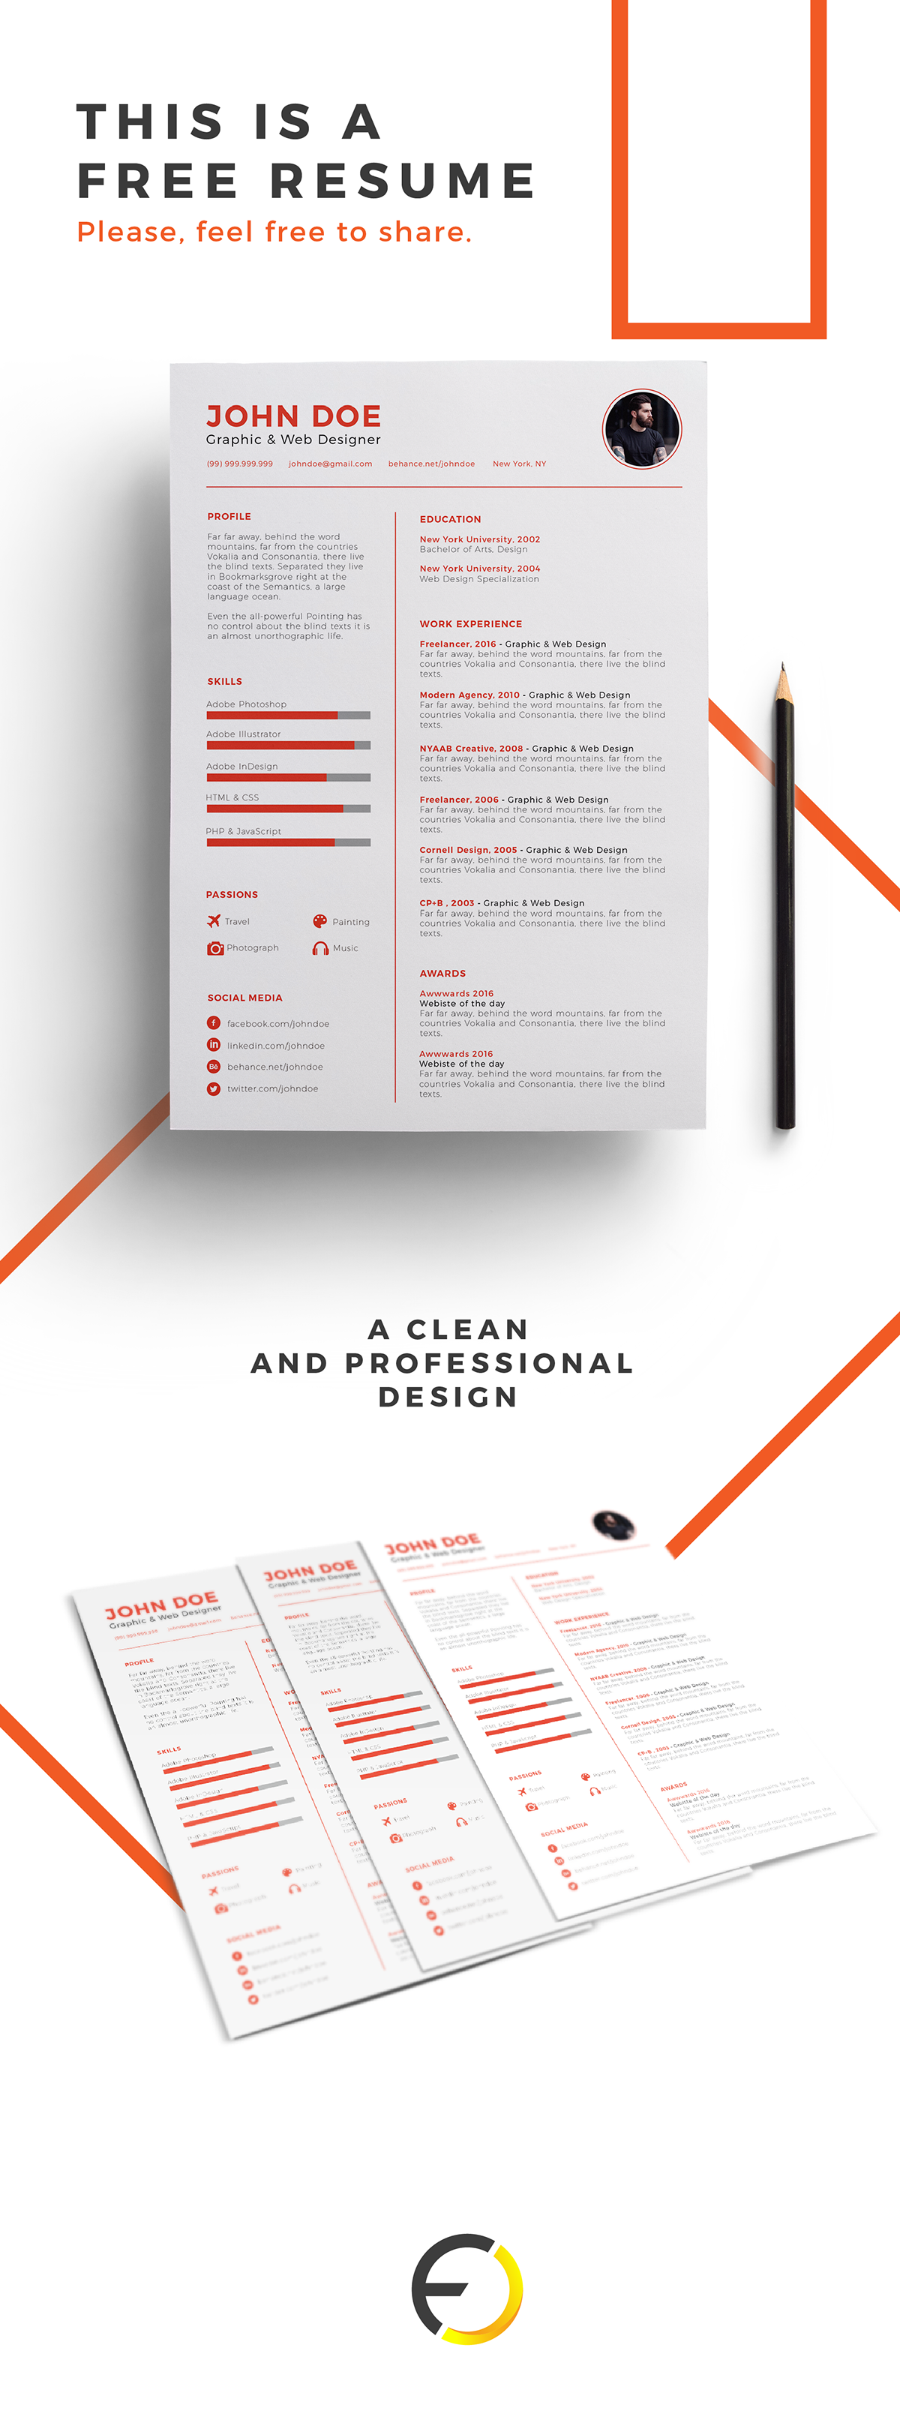 Clean Design Free Resume Template